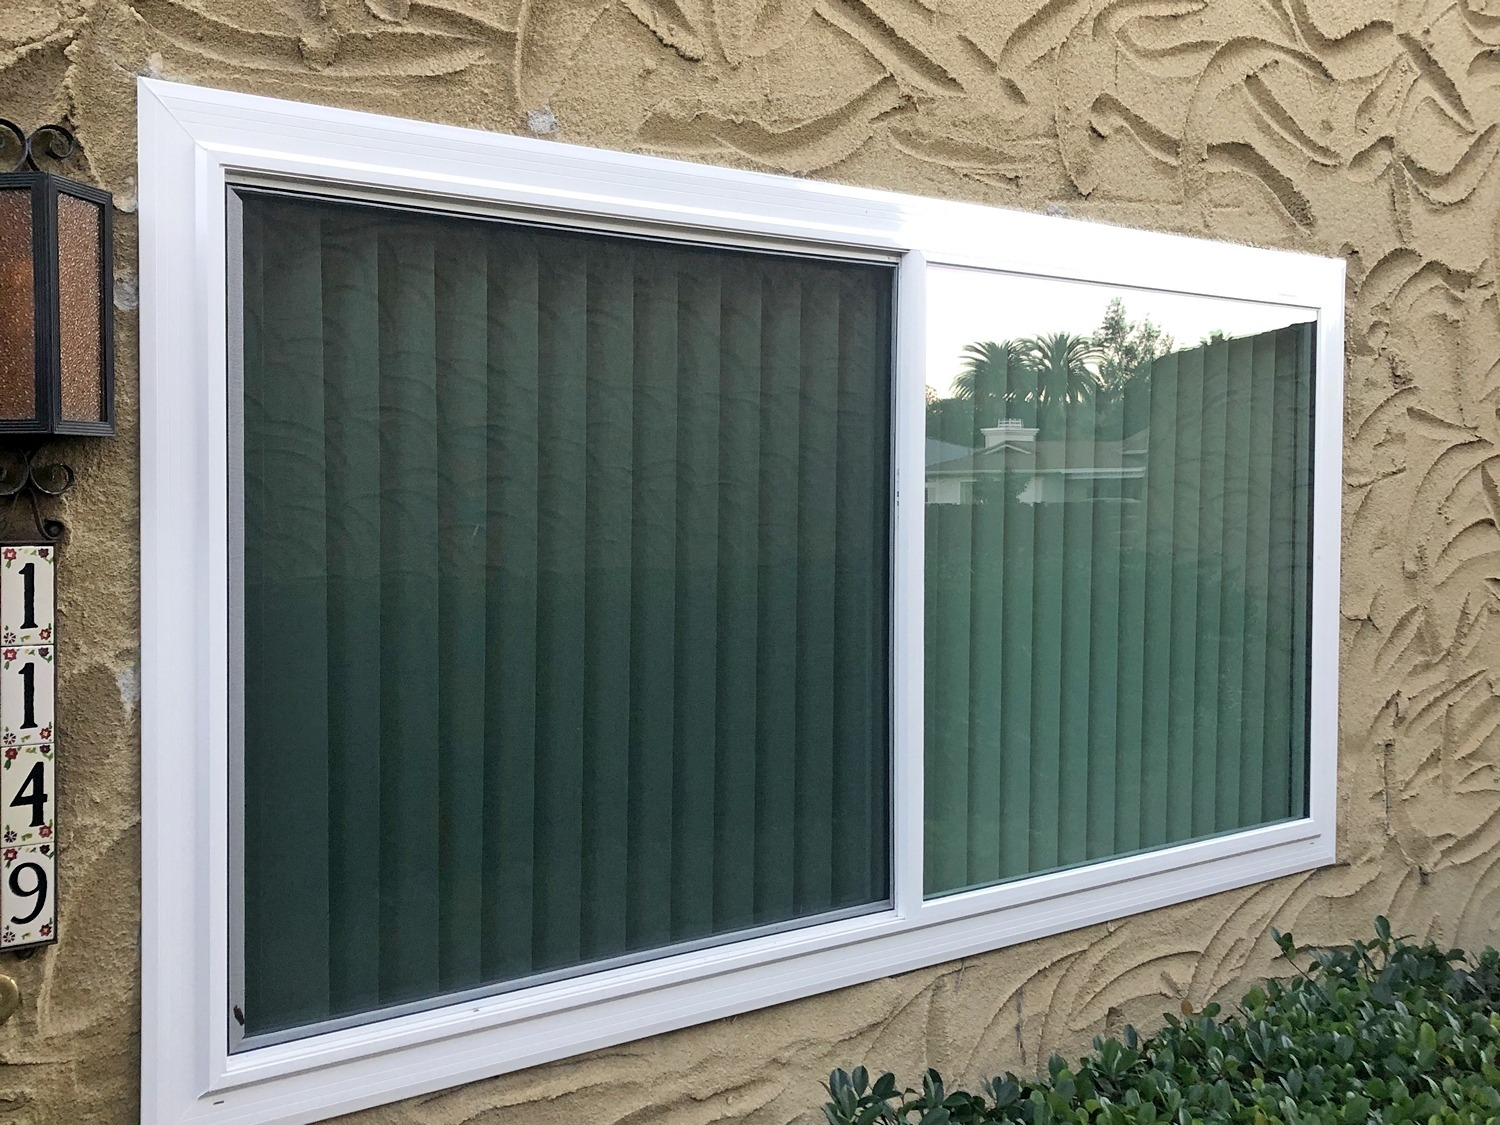 Window and Sliding Door Replacement San Diego